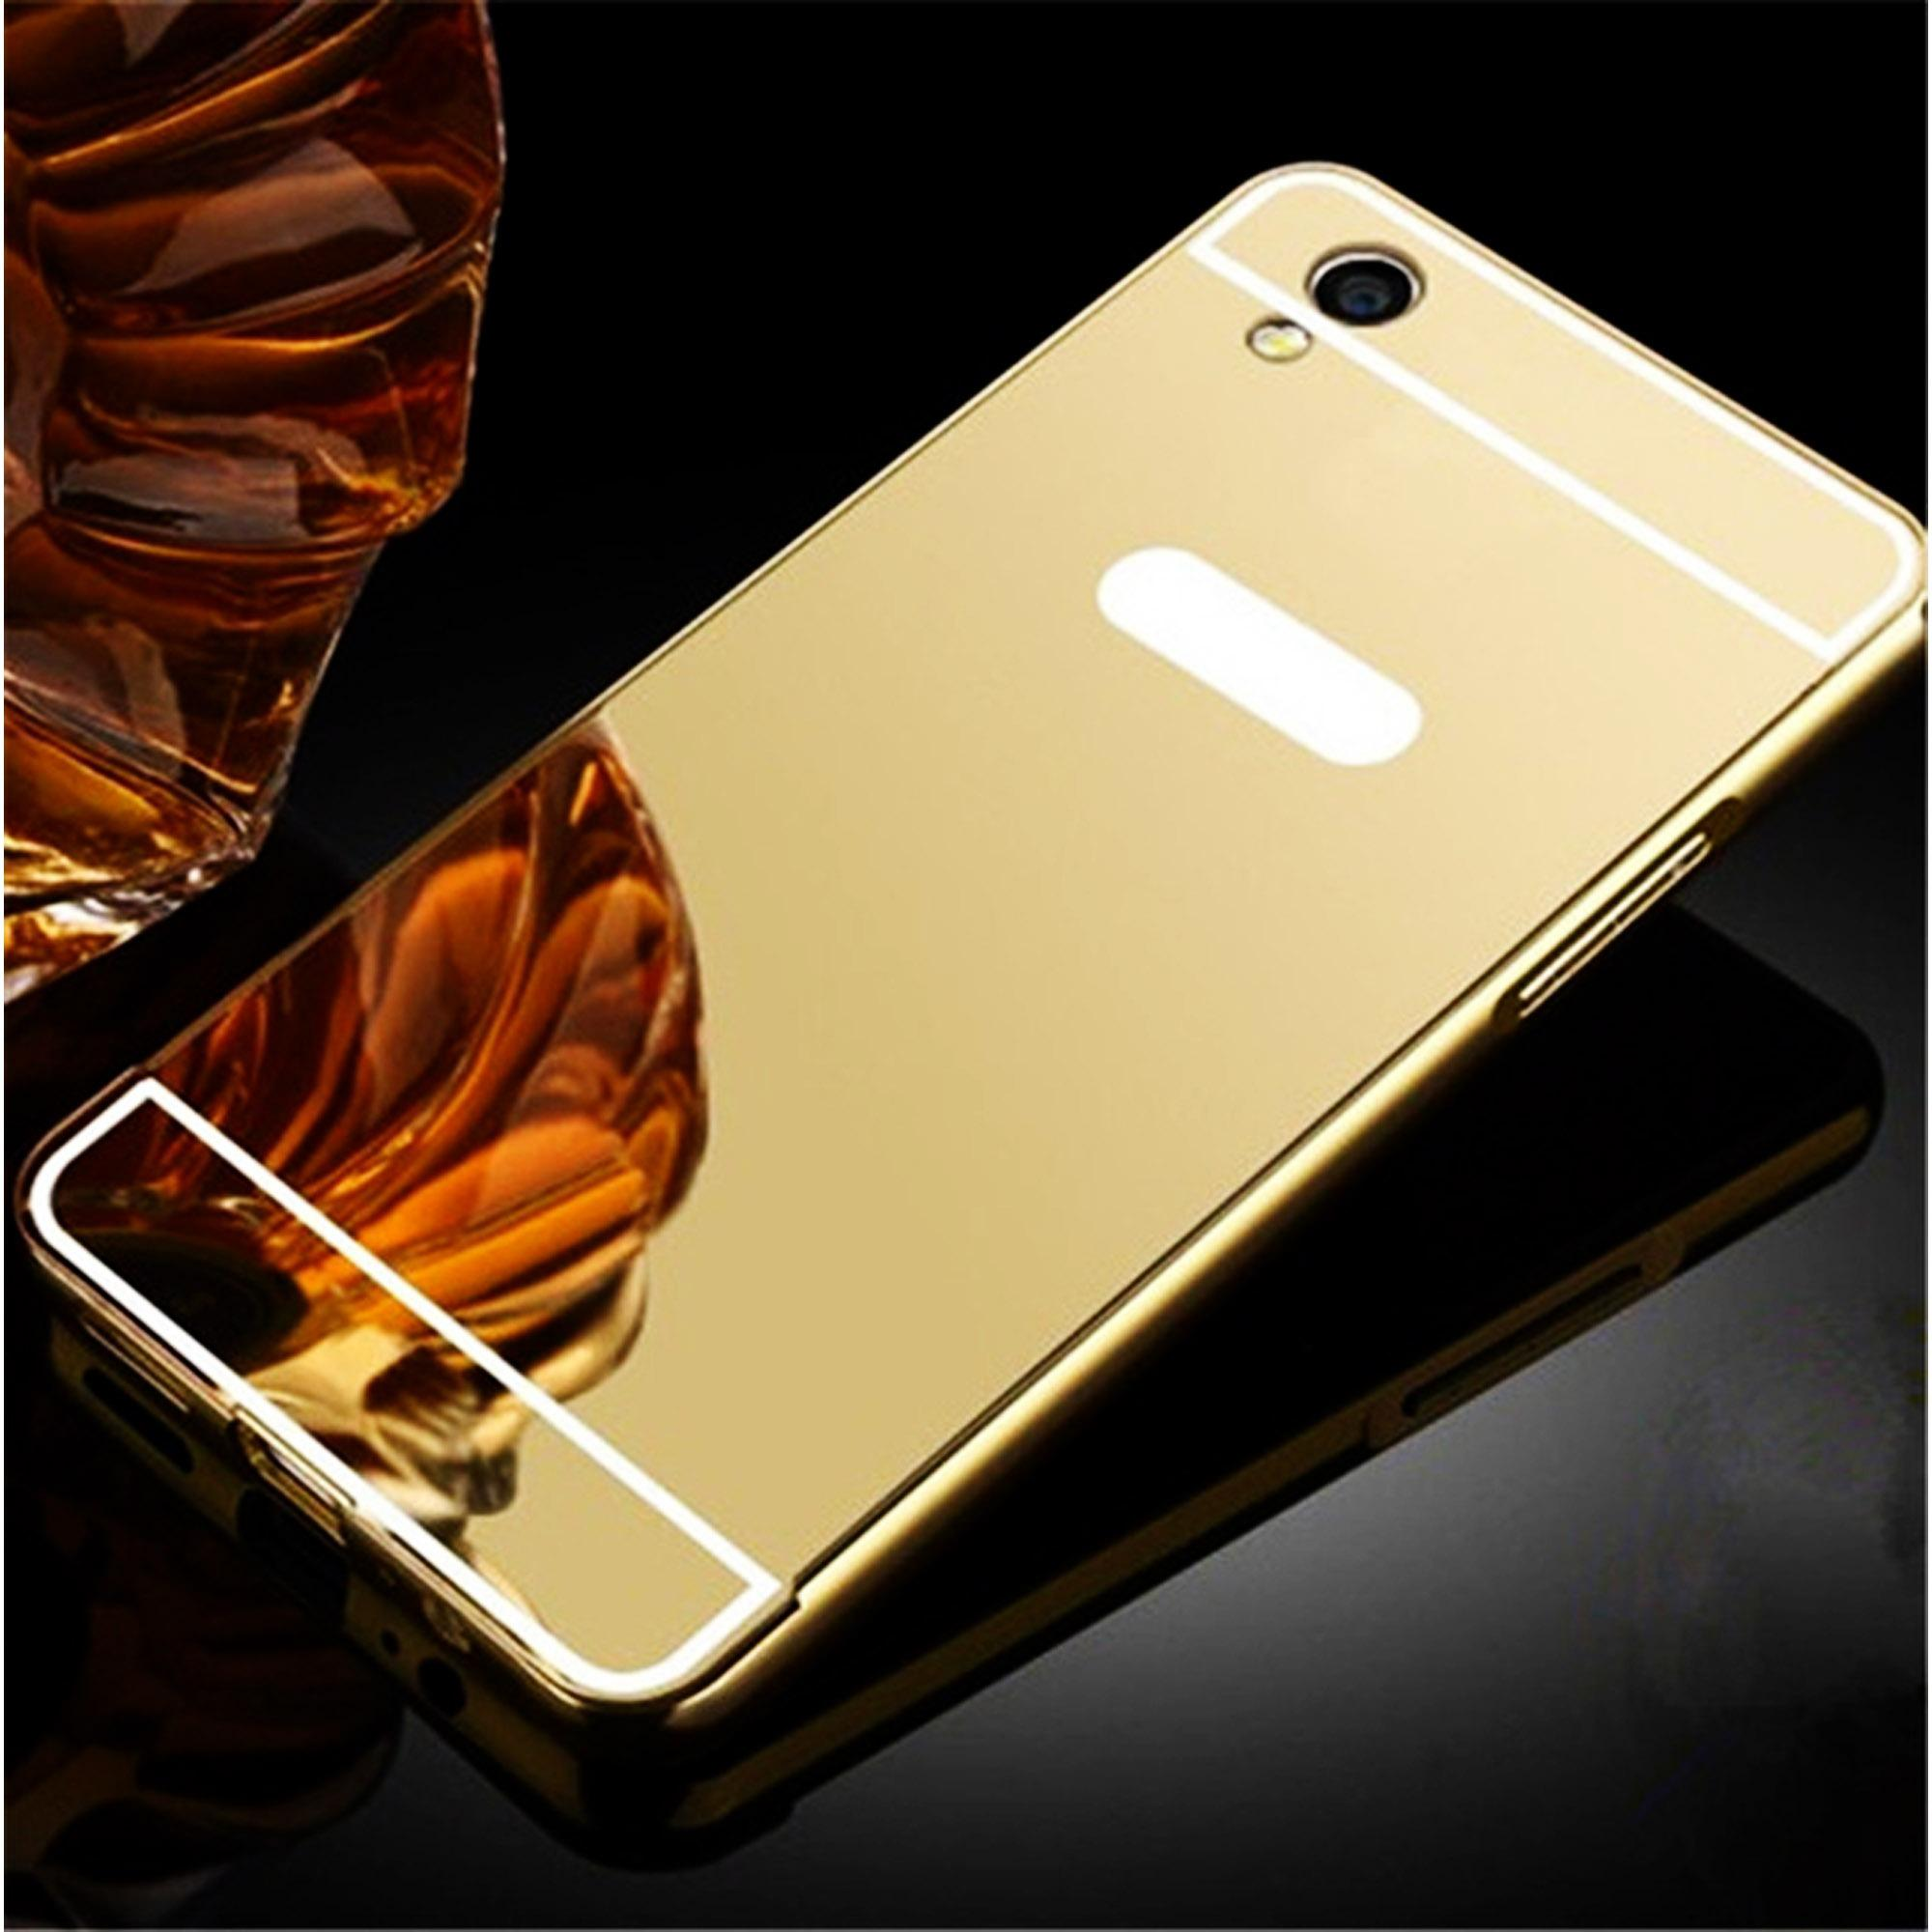 Marintri Case Oppo A37 Luxury Mirror Case Gold